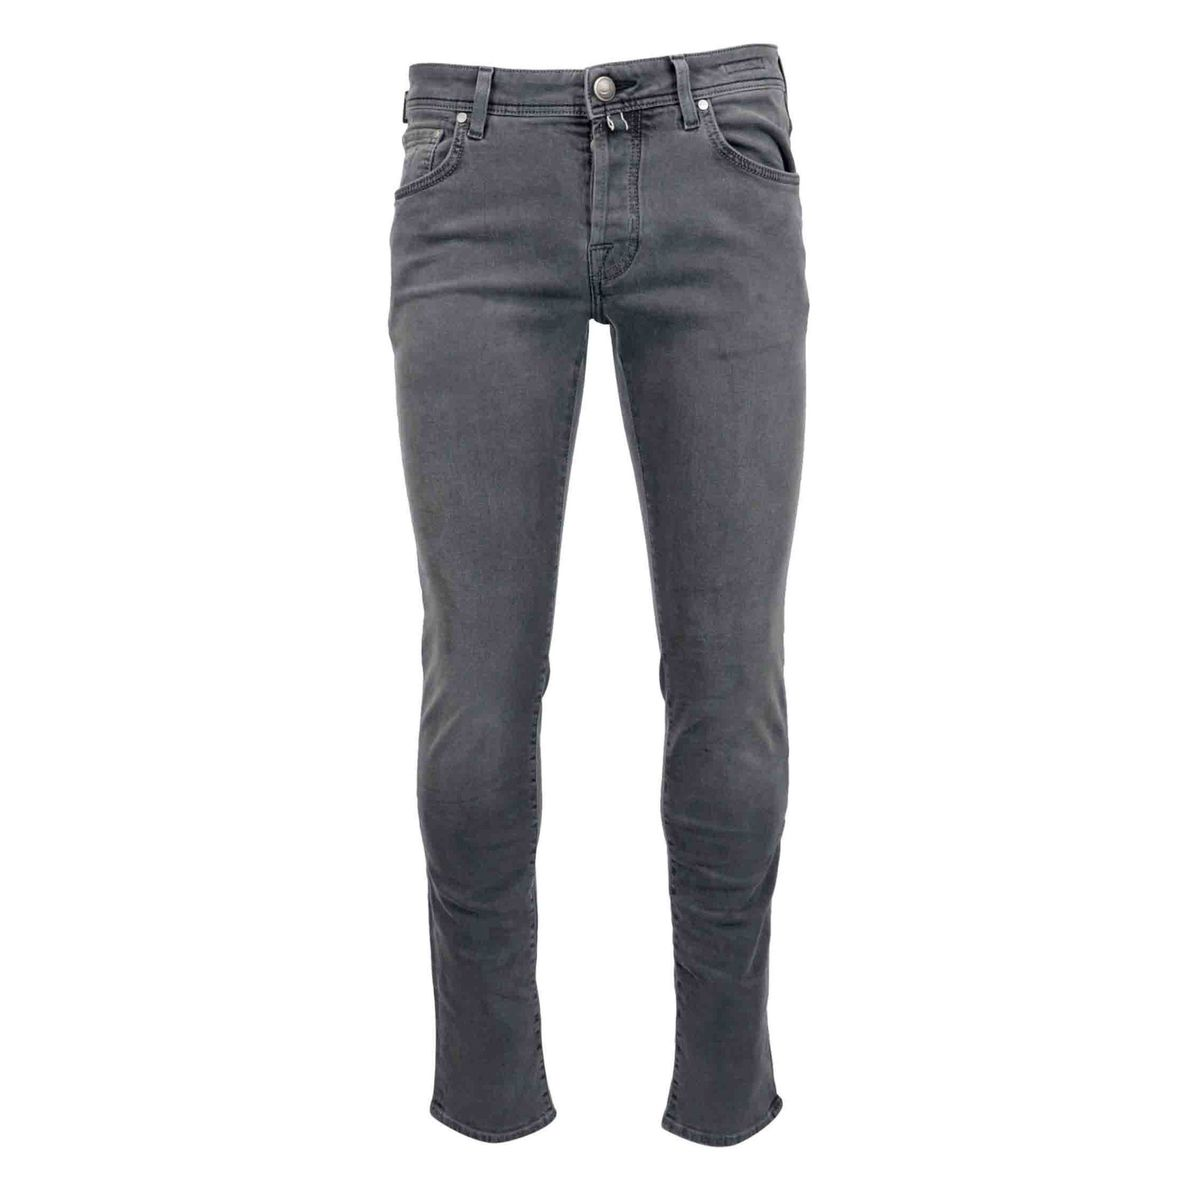 5 pocket jeans in gray denim Grey Jacob Cohen